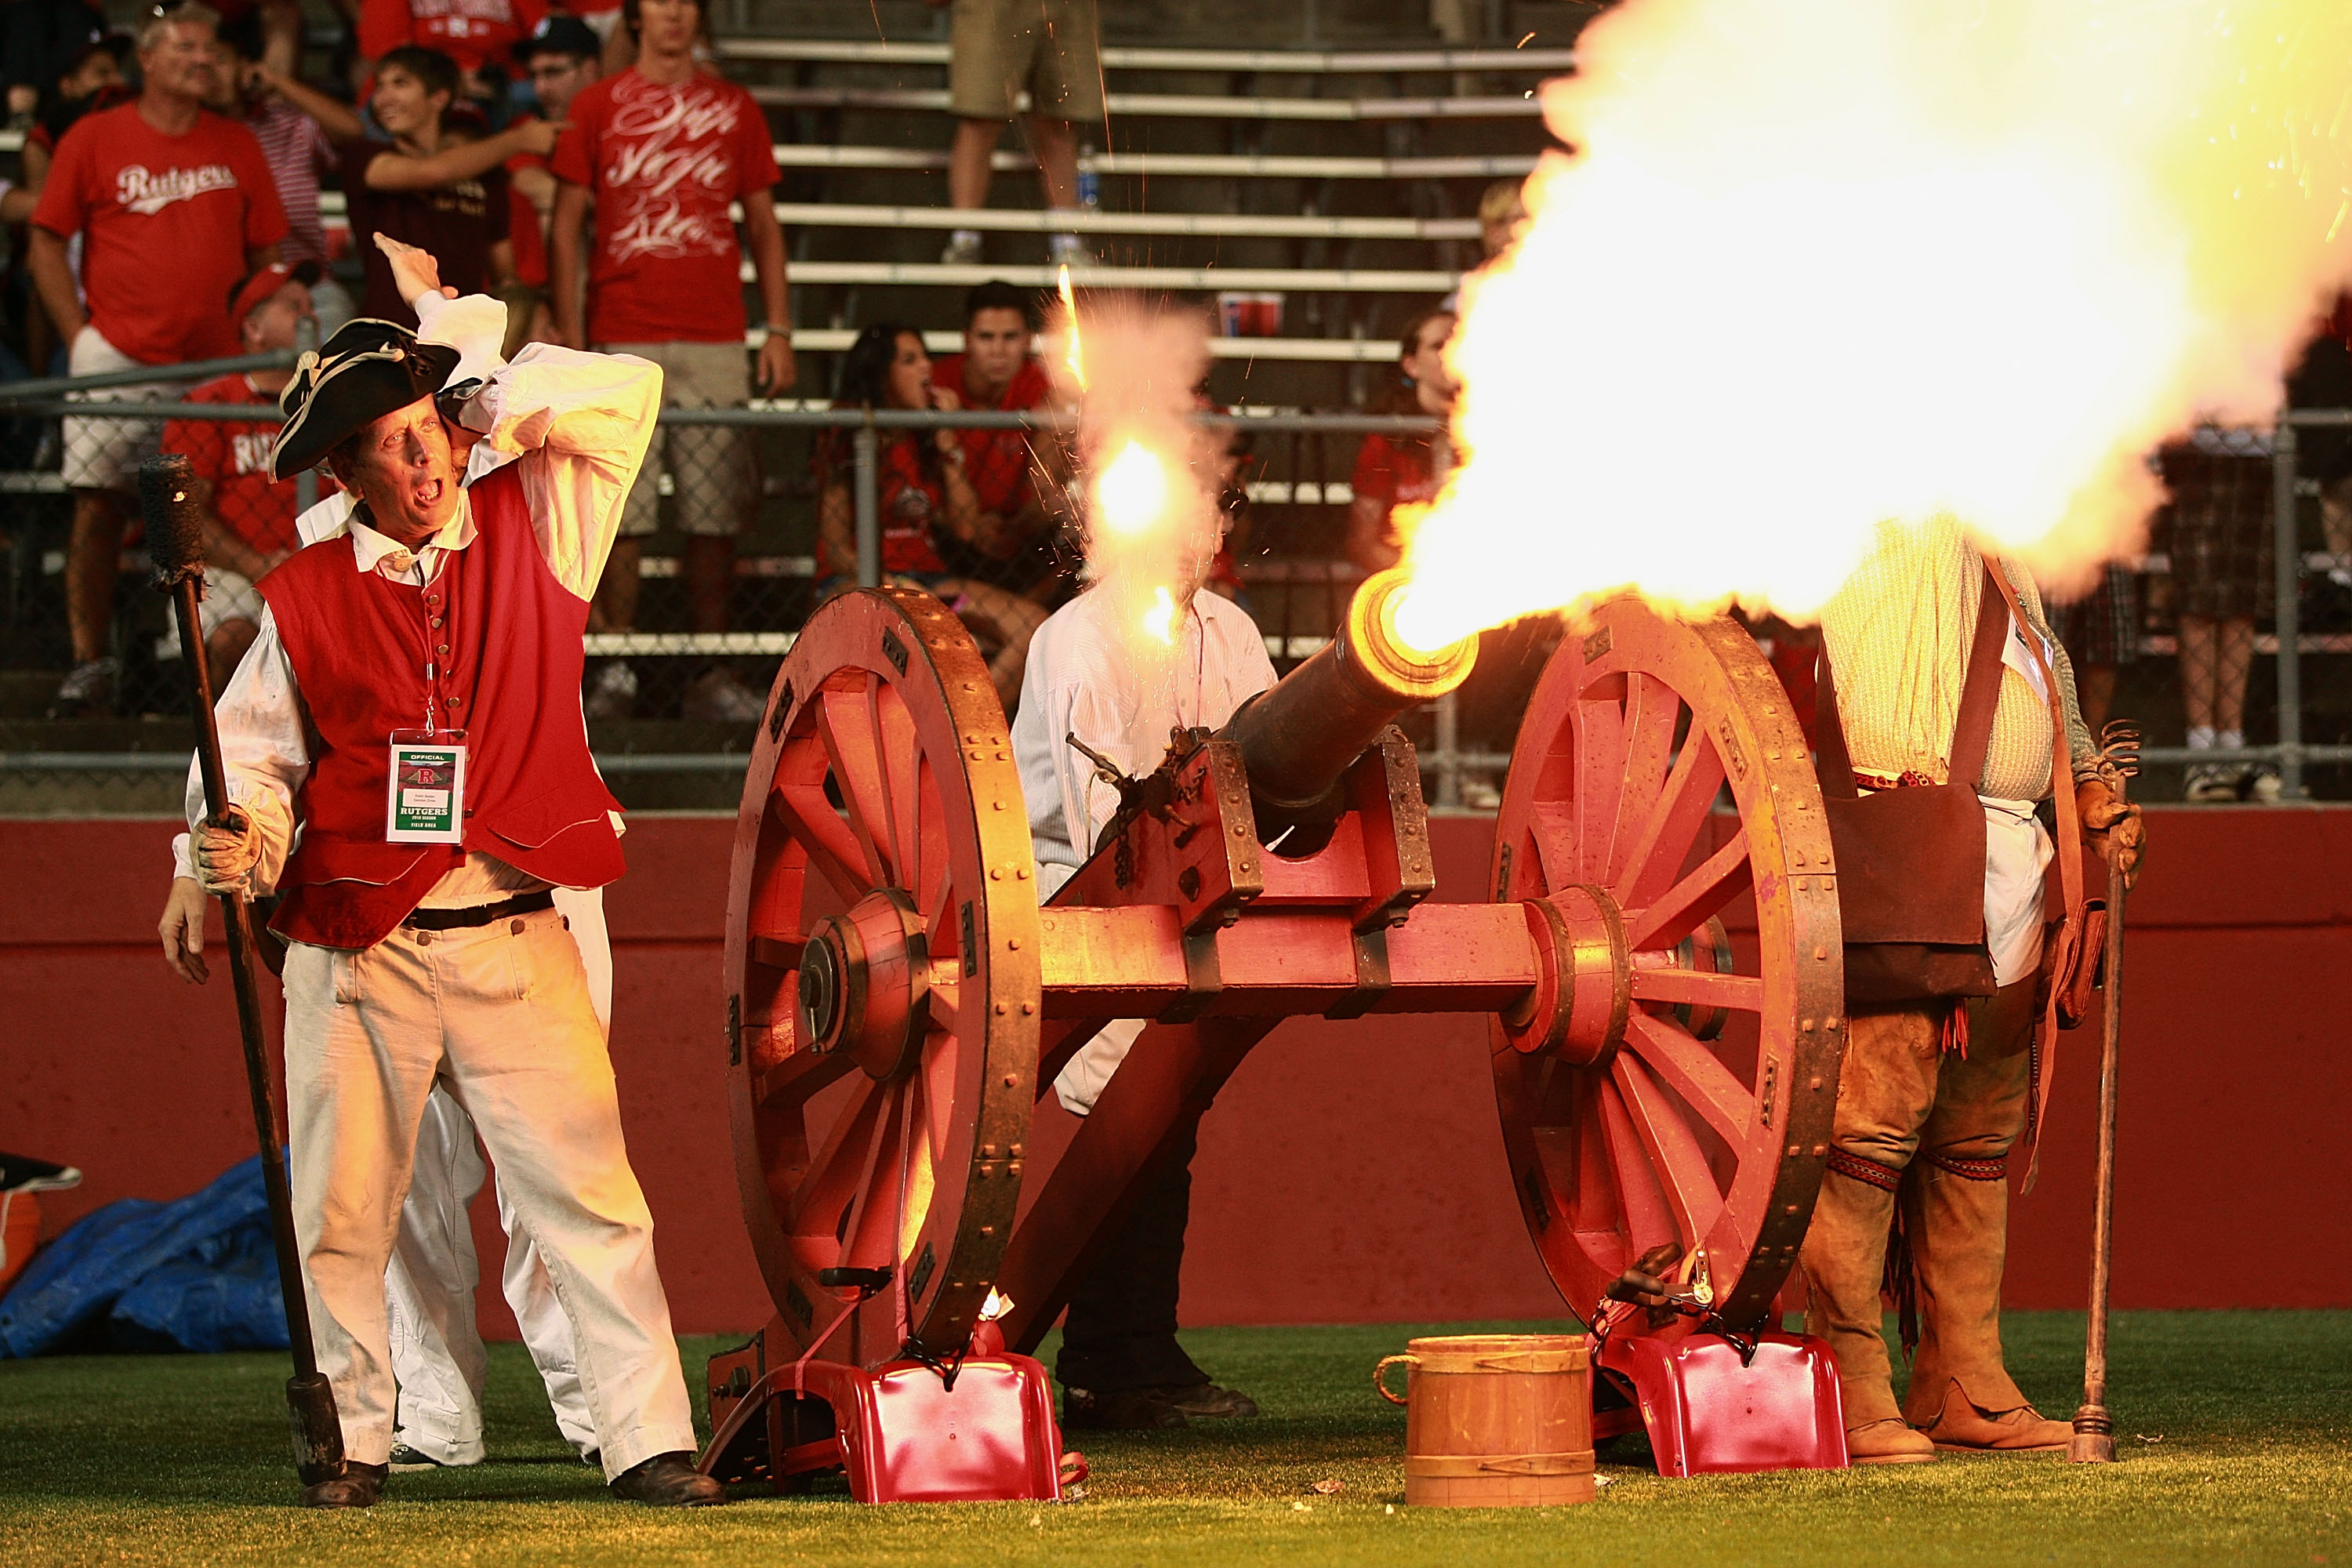 NEW BRUNSWICK, NJ - SEPTEMBER 02:  The Rutgers cannon is set off after a successful field goal kick against the Norfolk State Spartans at Rutgers Stadium on September 2, 2010 in New Brunswick, New Jersey.  It was the first time the cannon had ever been us